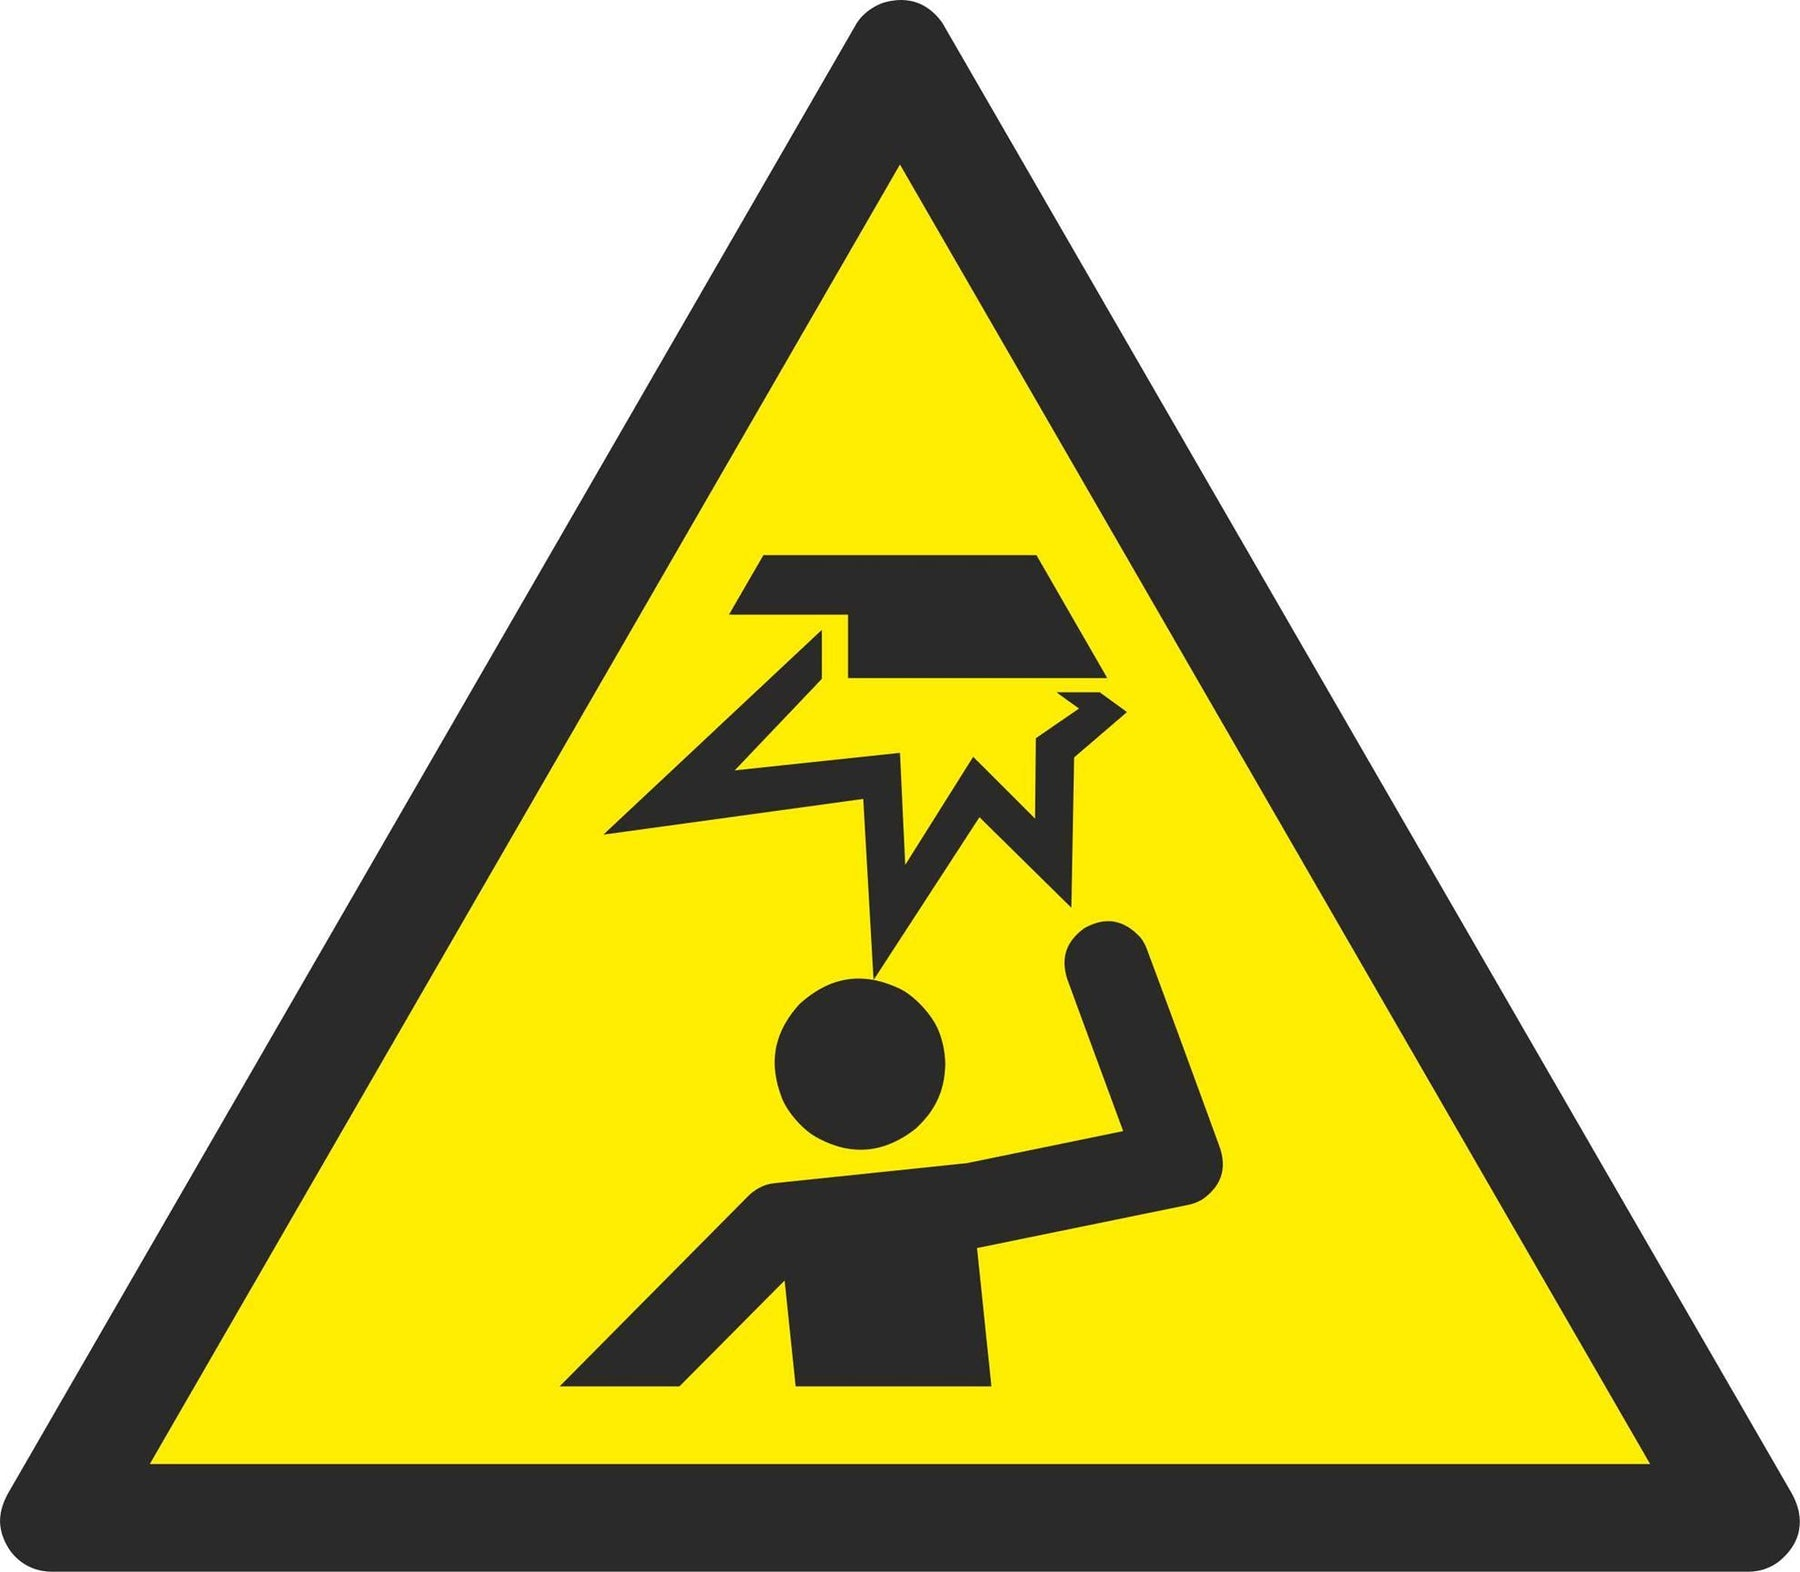 Warning Overhead obstacle - Symbol sticker sheet